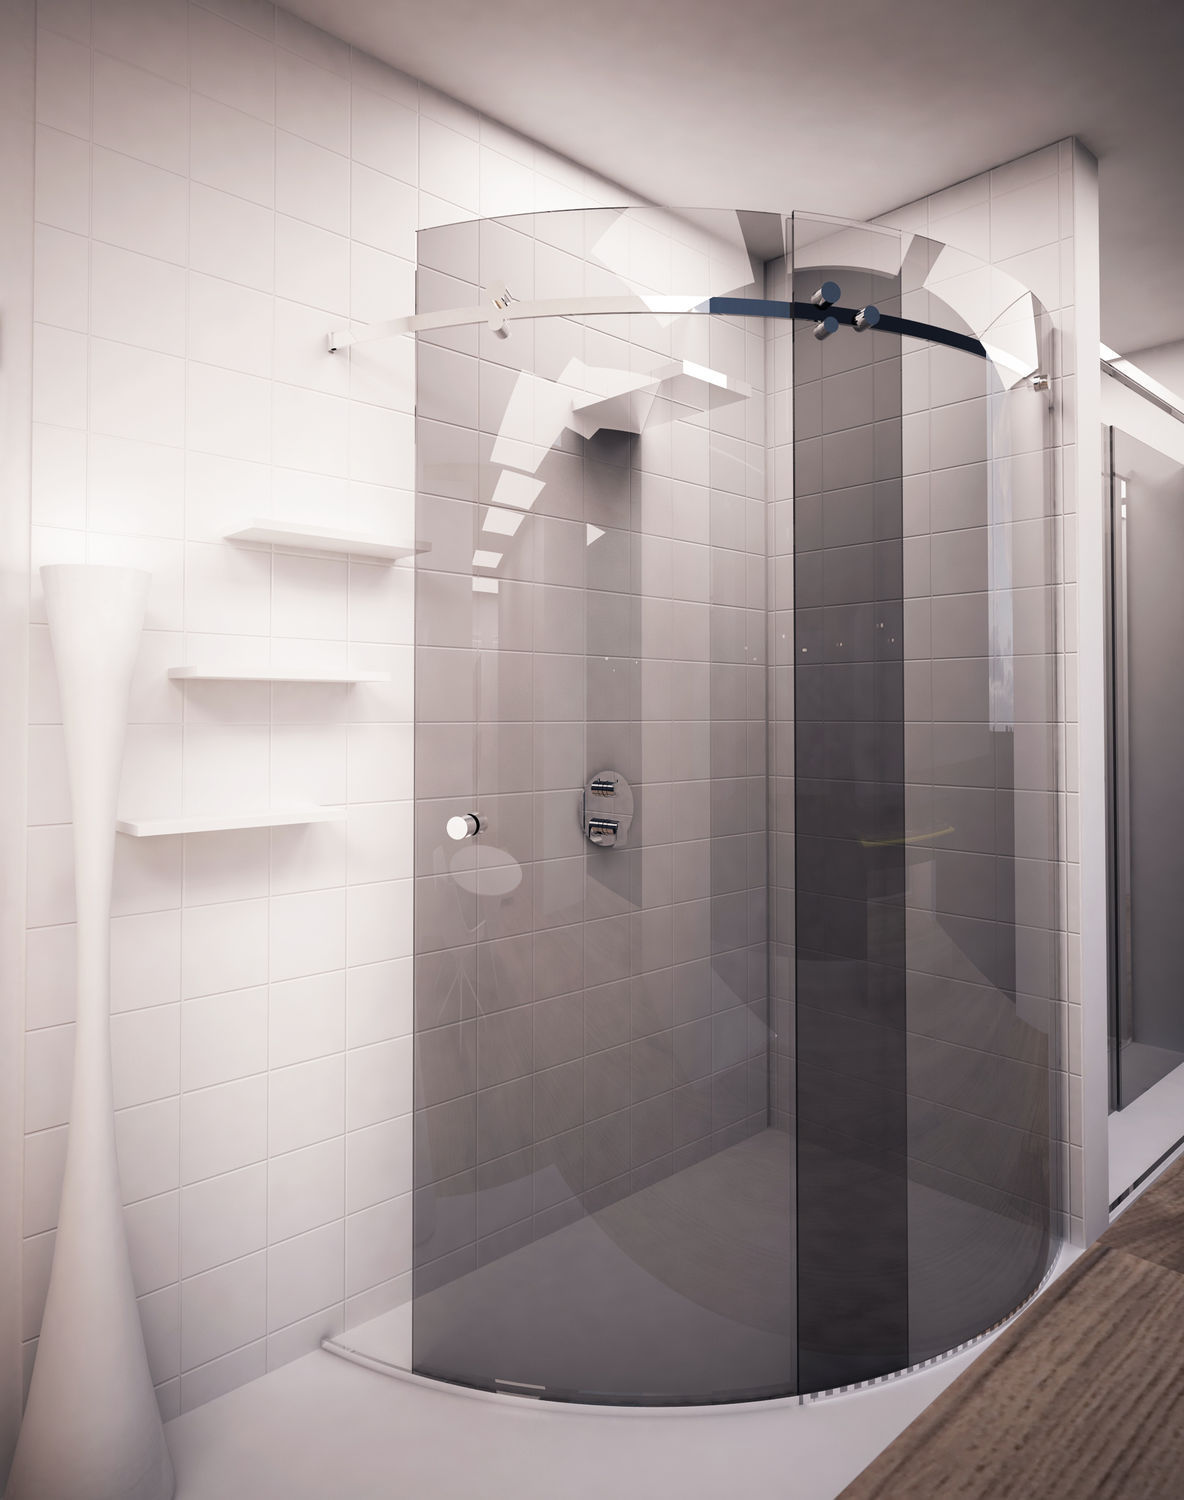 Walk-in shower enclosure / curved glass / stainless steel / corner ...